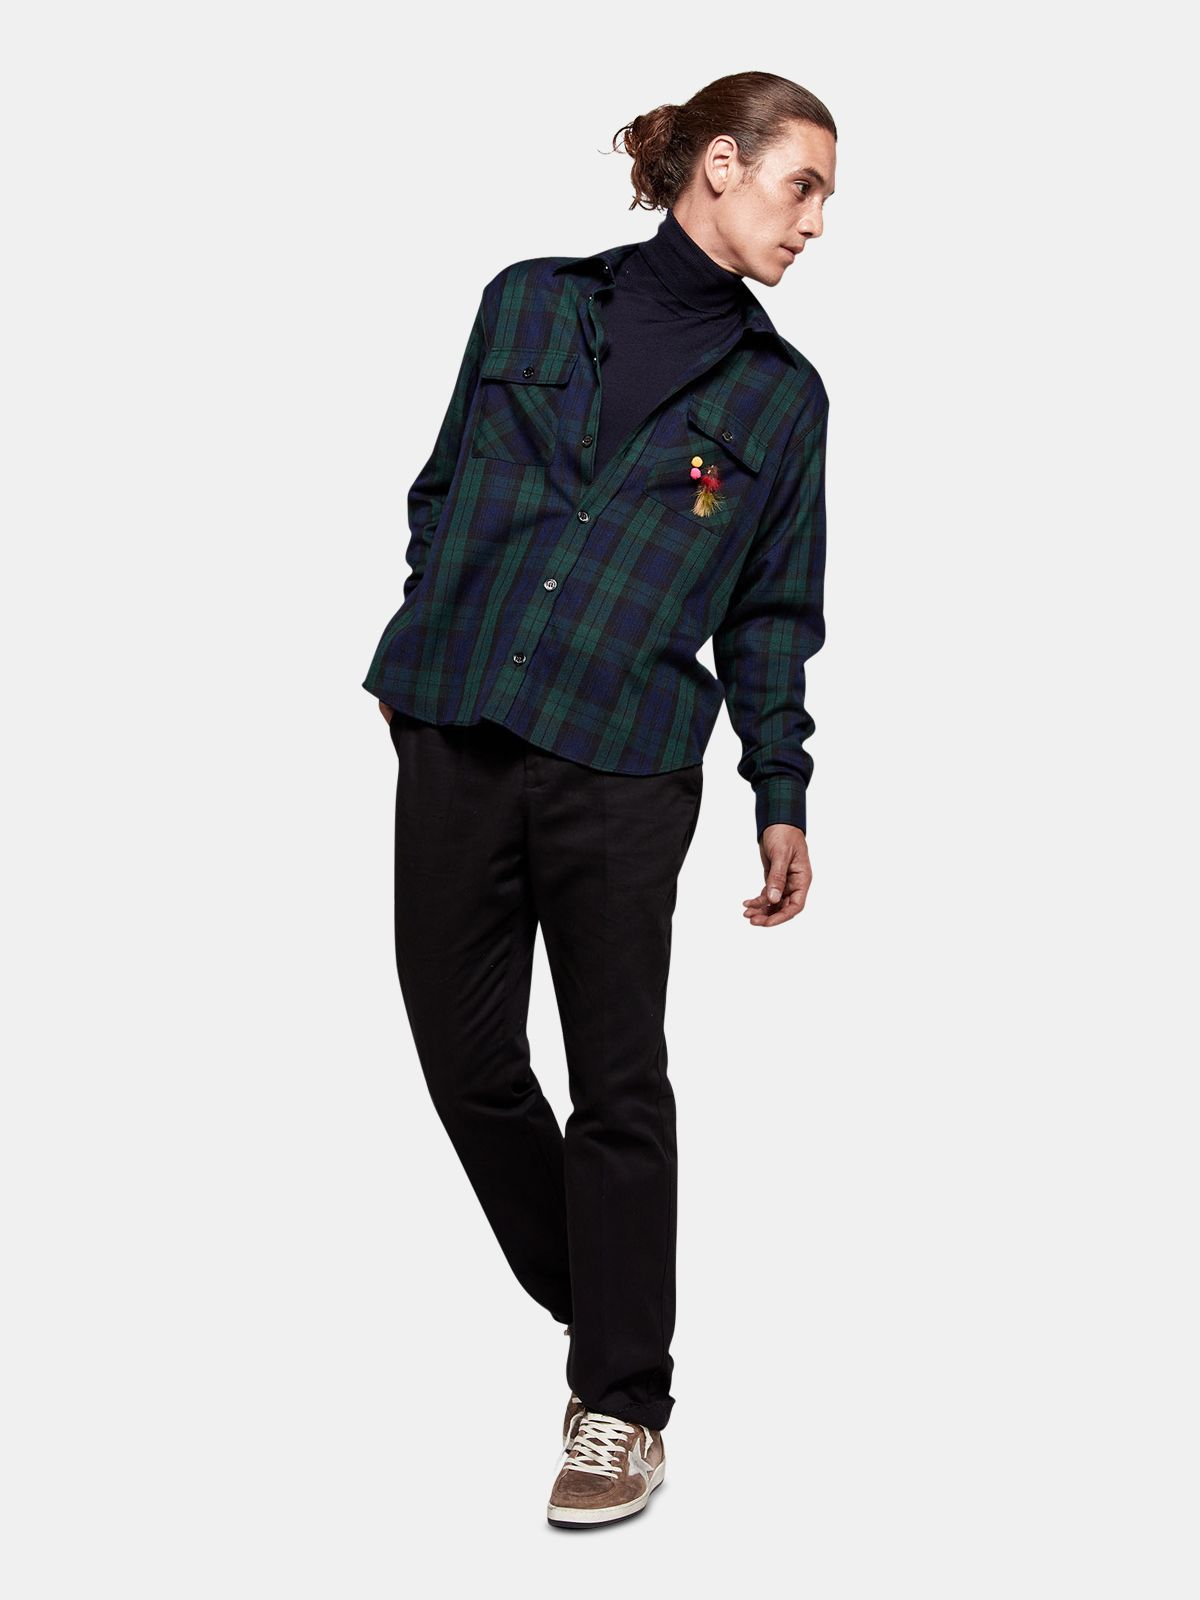 Golden Goose - Eiji shirt in tartan with fishing fly decoration in